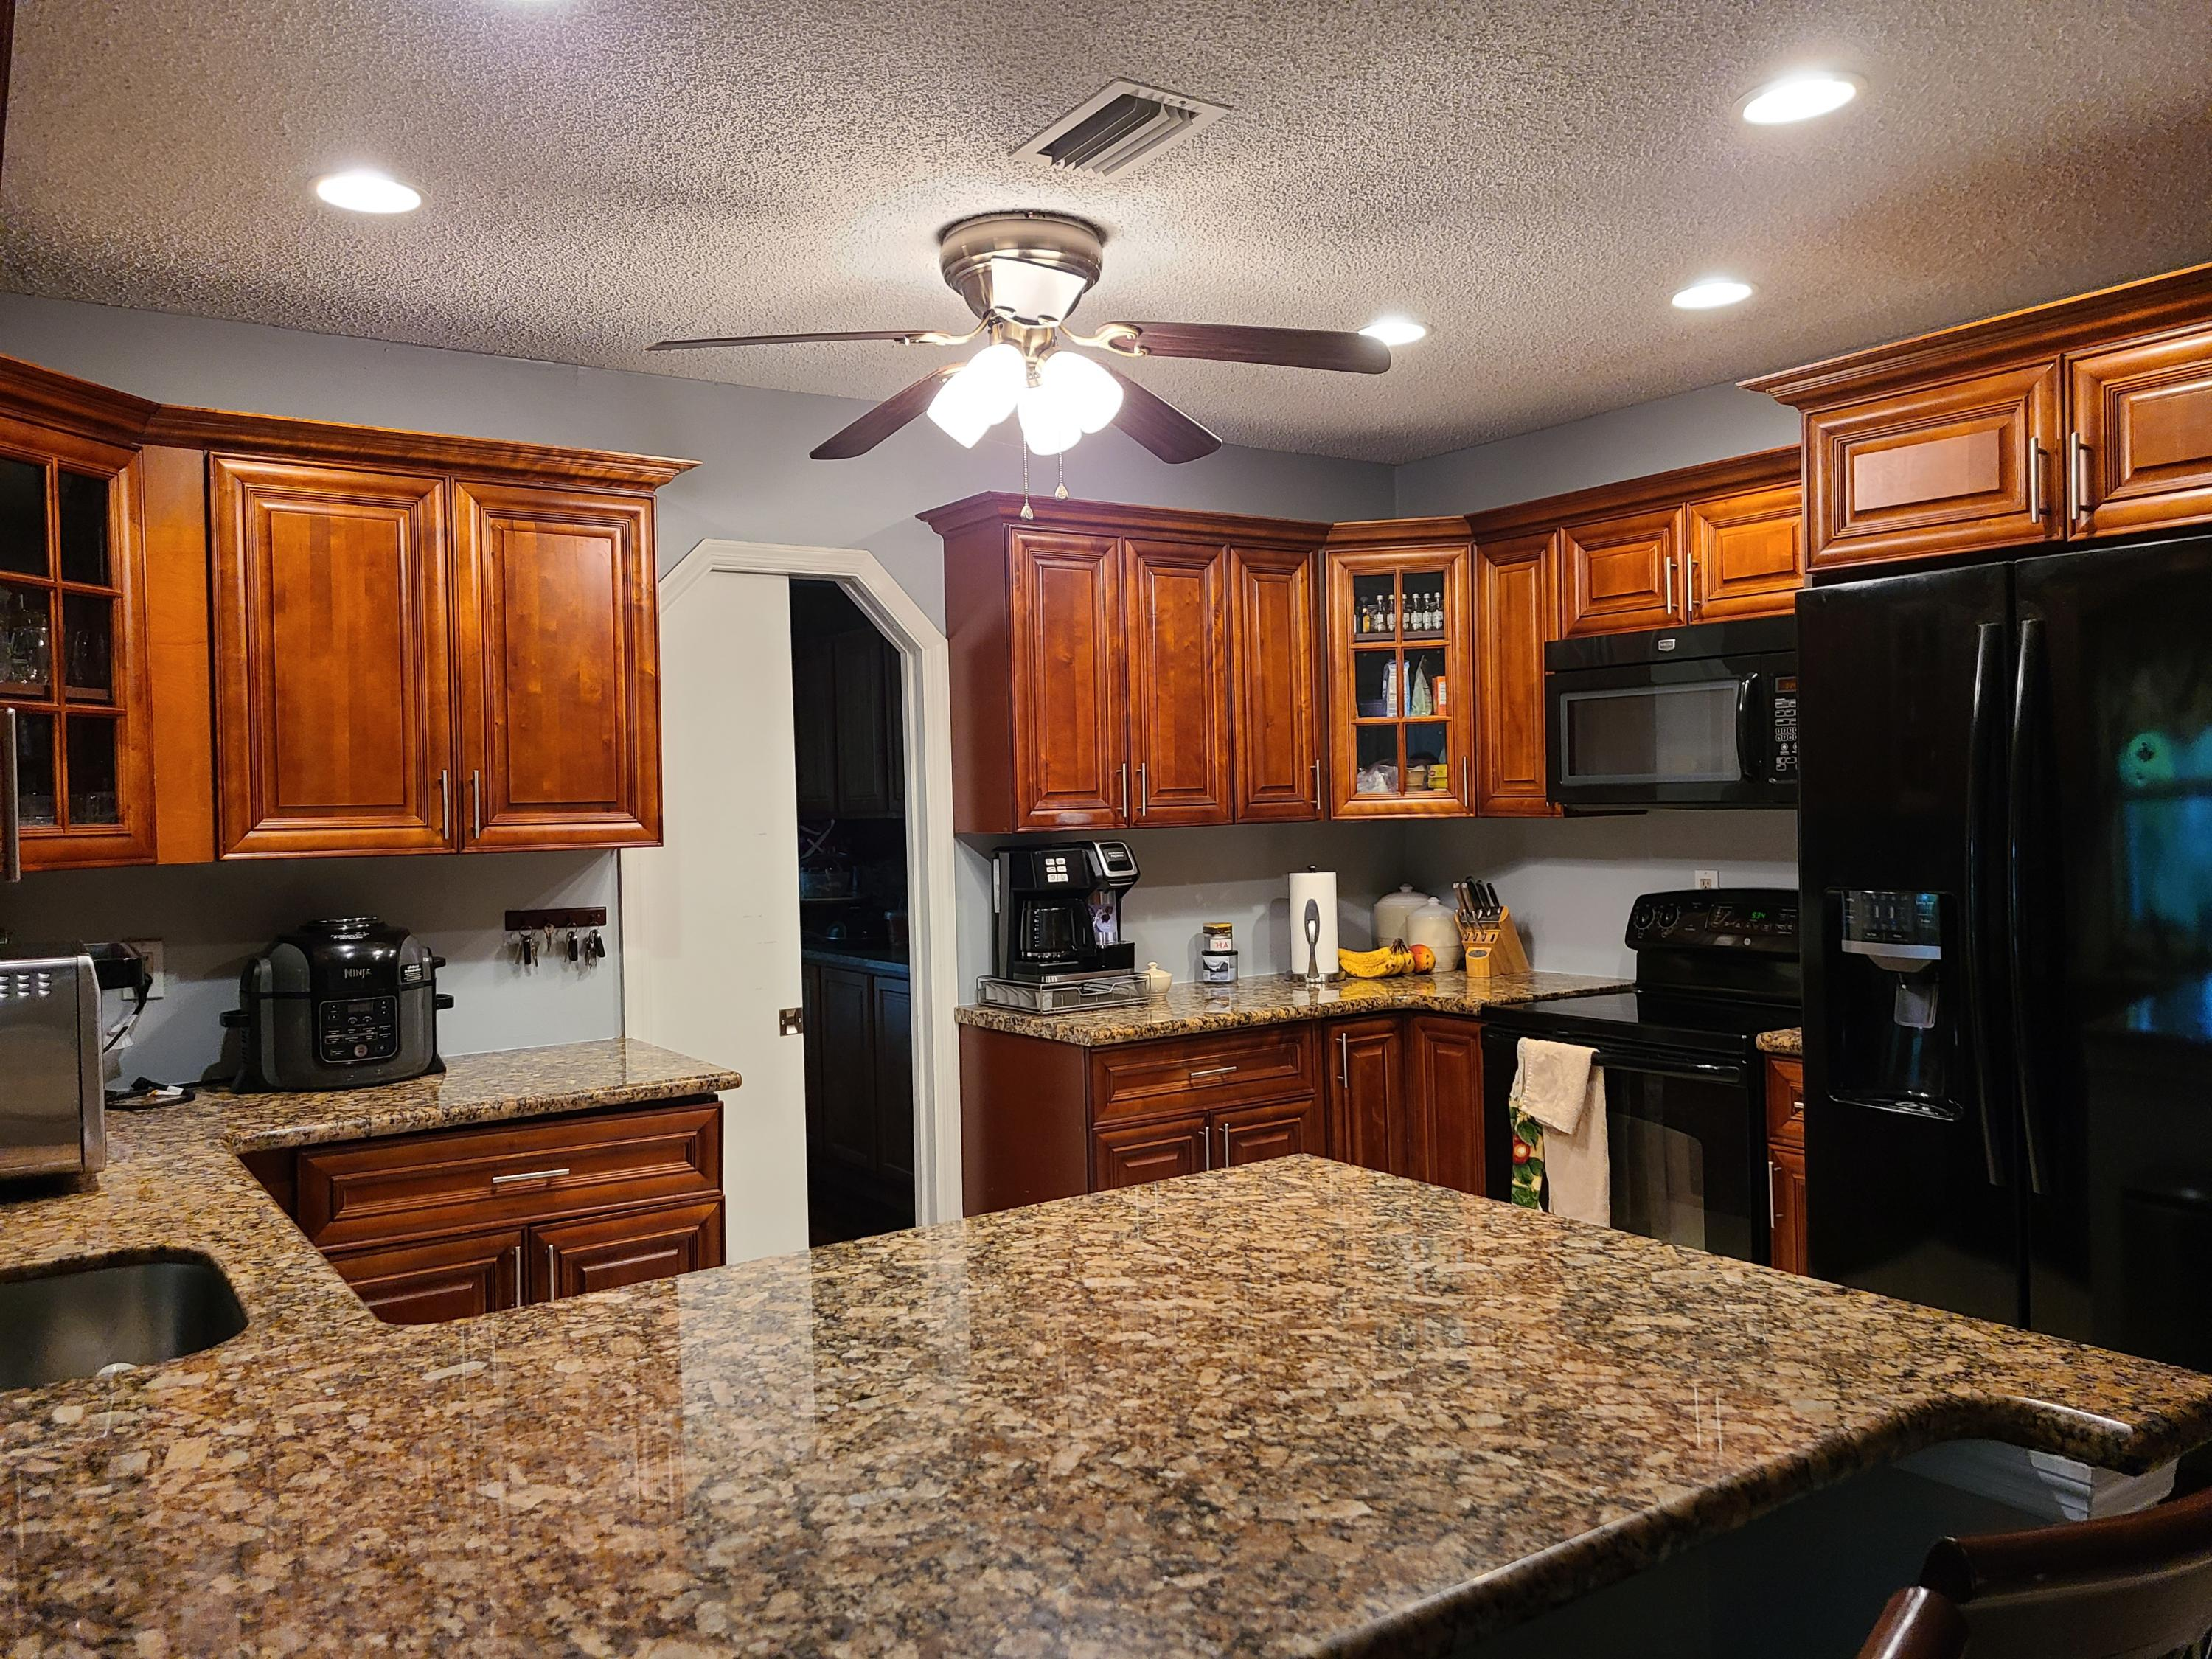 3805 Match Road Road, Lake Worth, Florida 33467, 4 Bedrooms Bedrooms, ,2 BathroomsBathrooms,Residential,For Sale,Match Road,RX-10725284